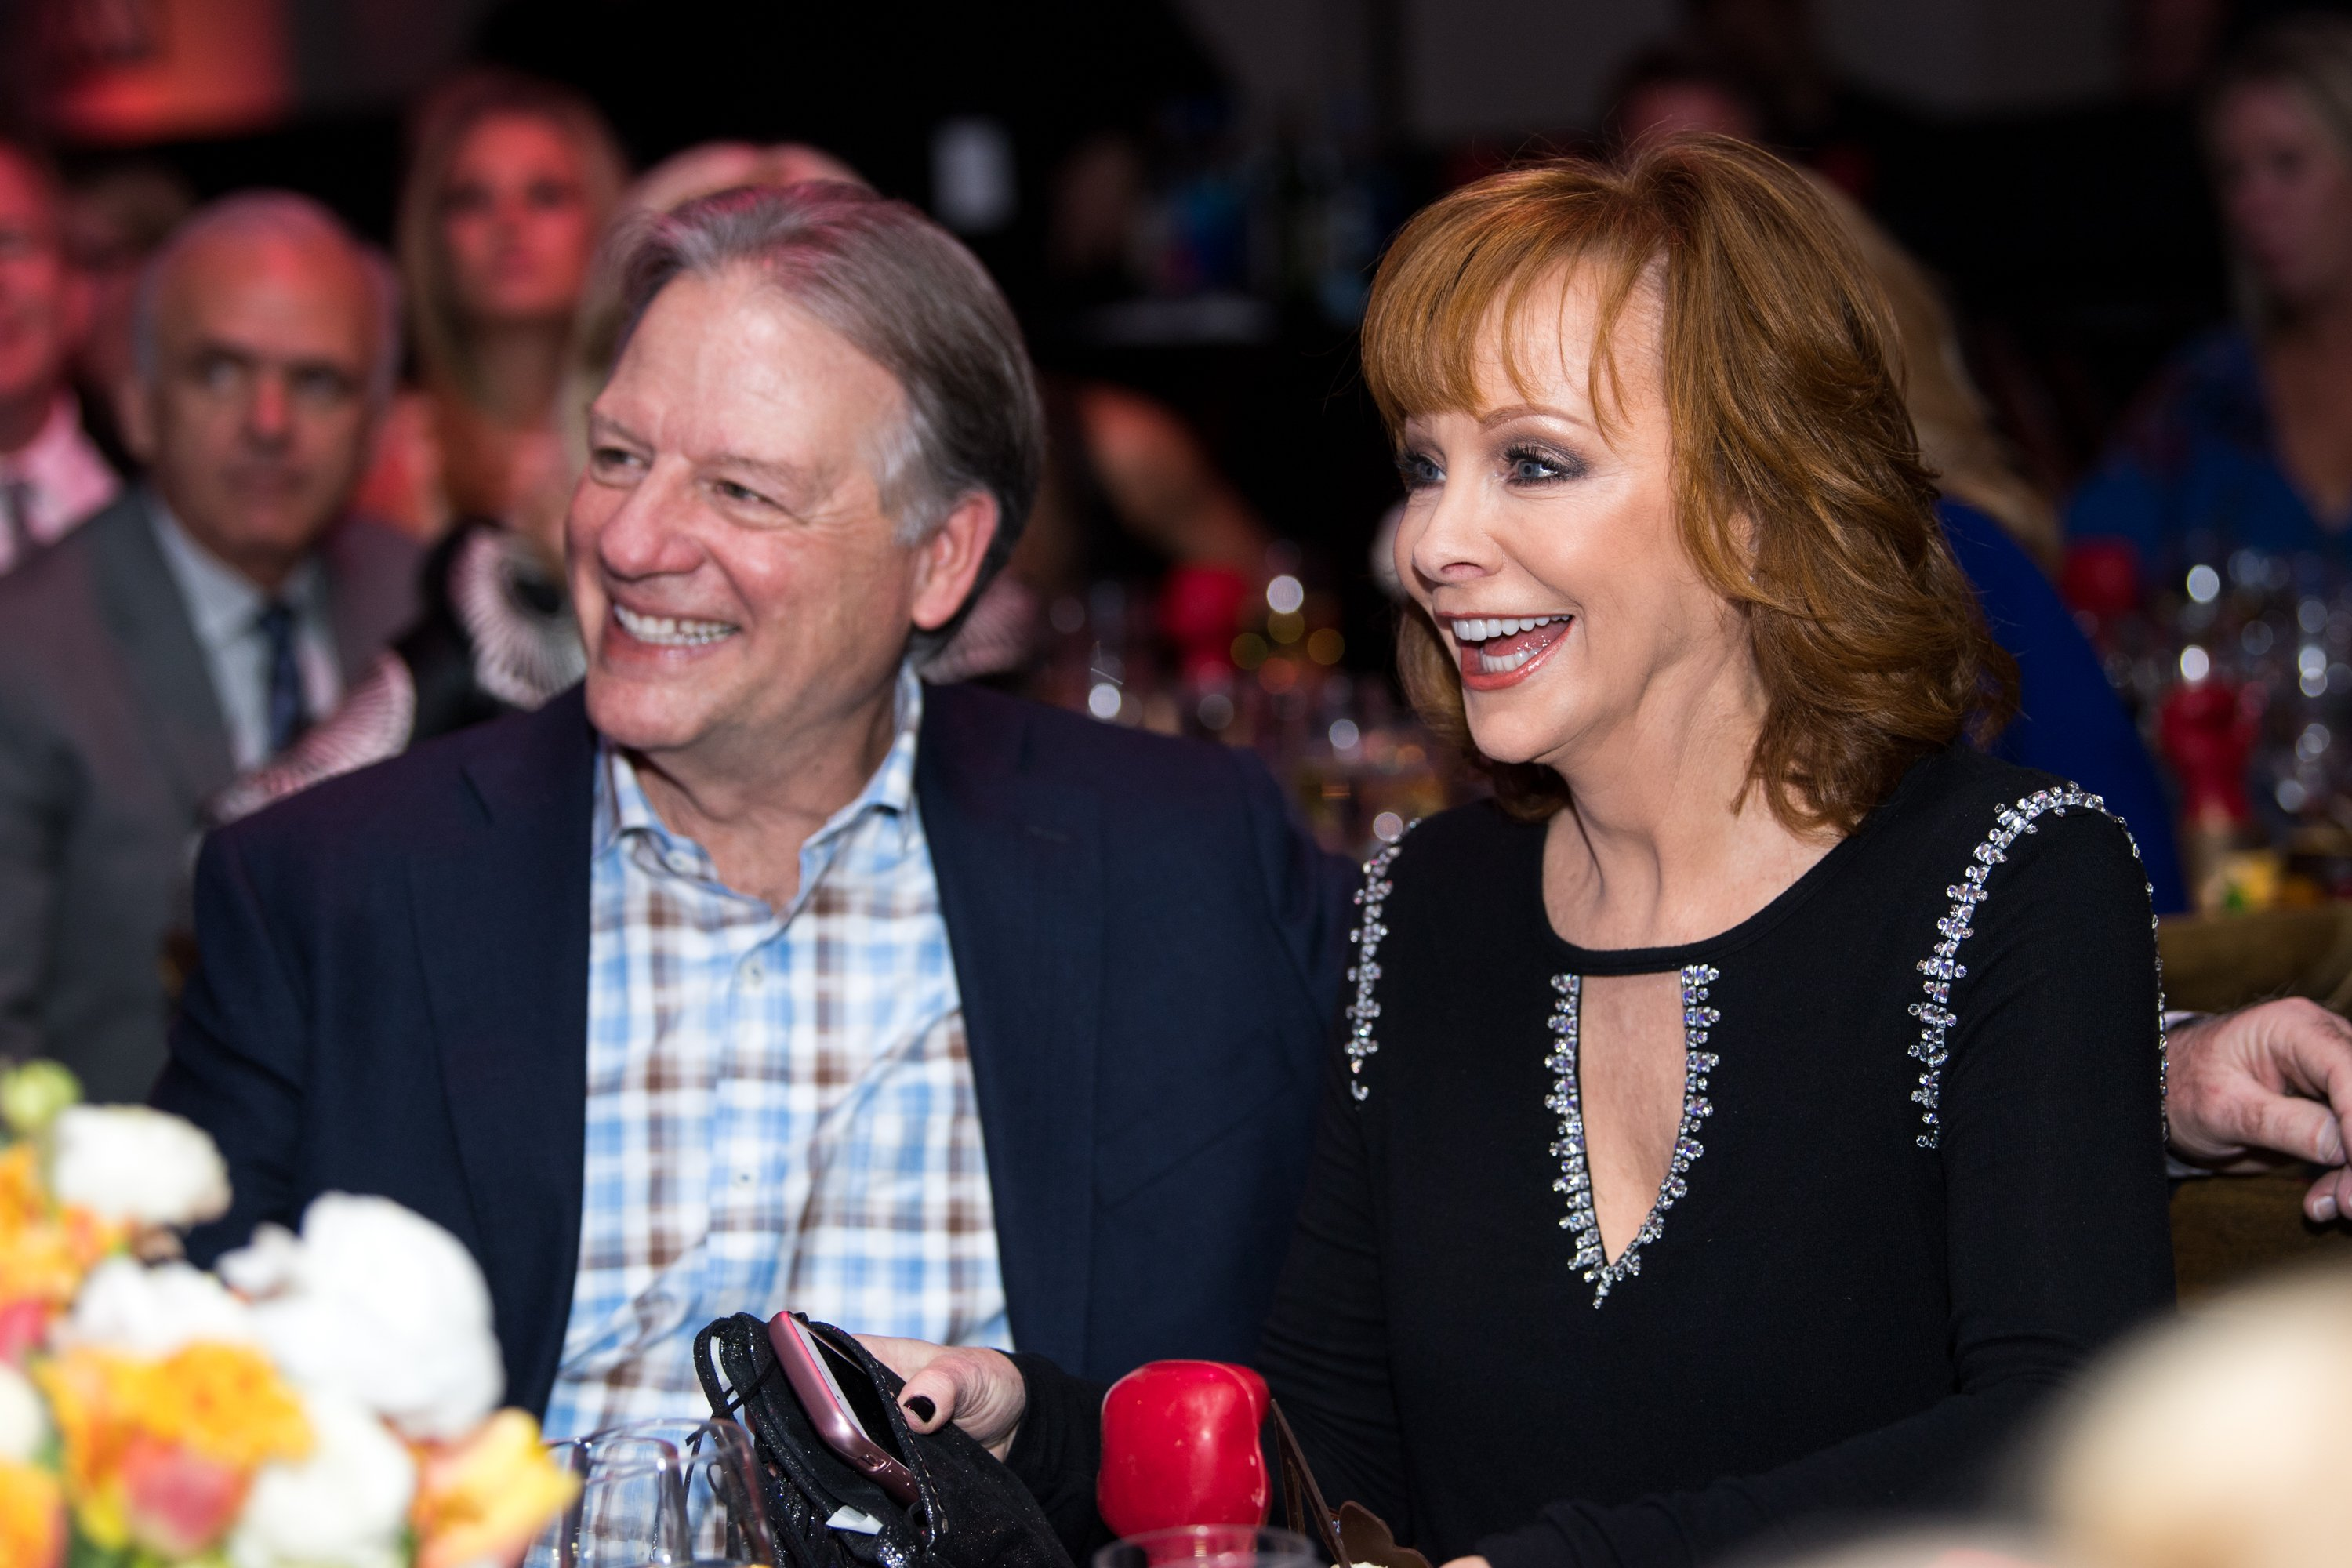 Anthony Lasuzzo (L) and Reba McEntire at the Celebrity Fight Night's Founders Club Dinner on March 9, 2018 | Source: Getty Images